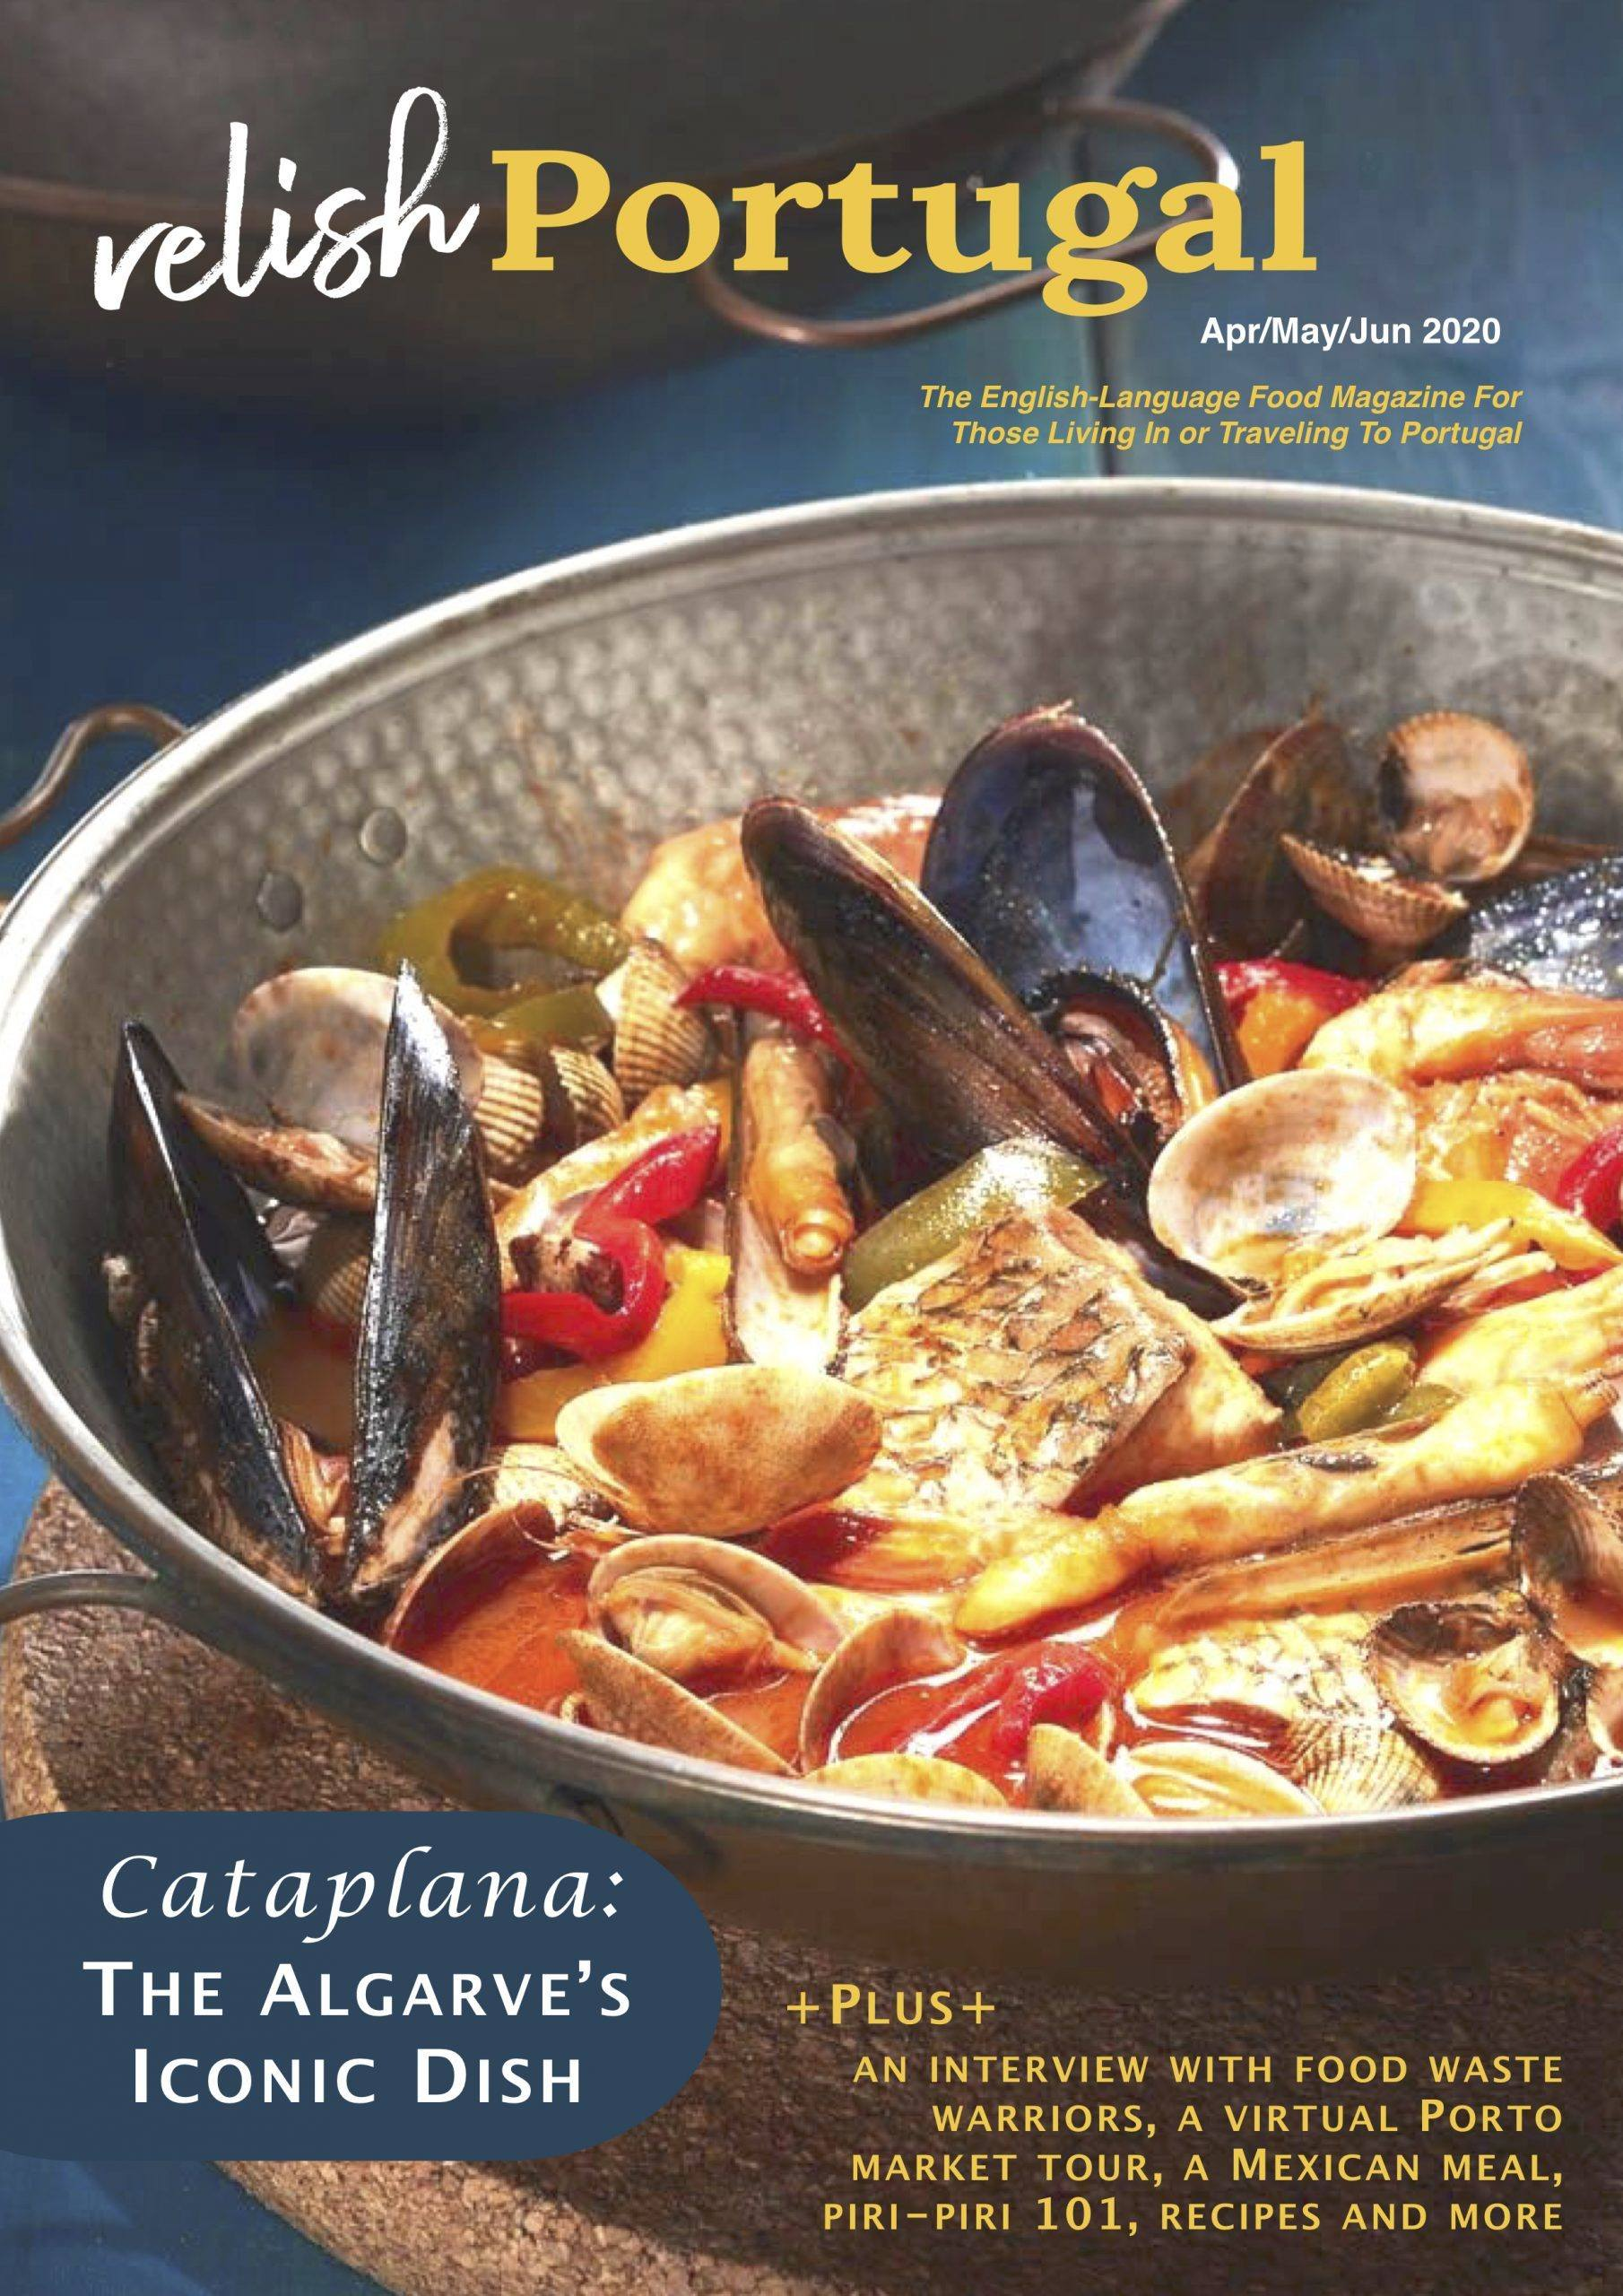 Relish Portugal AprMayJun 2020 Cover